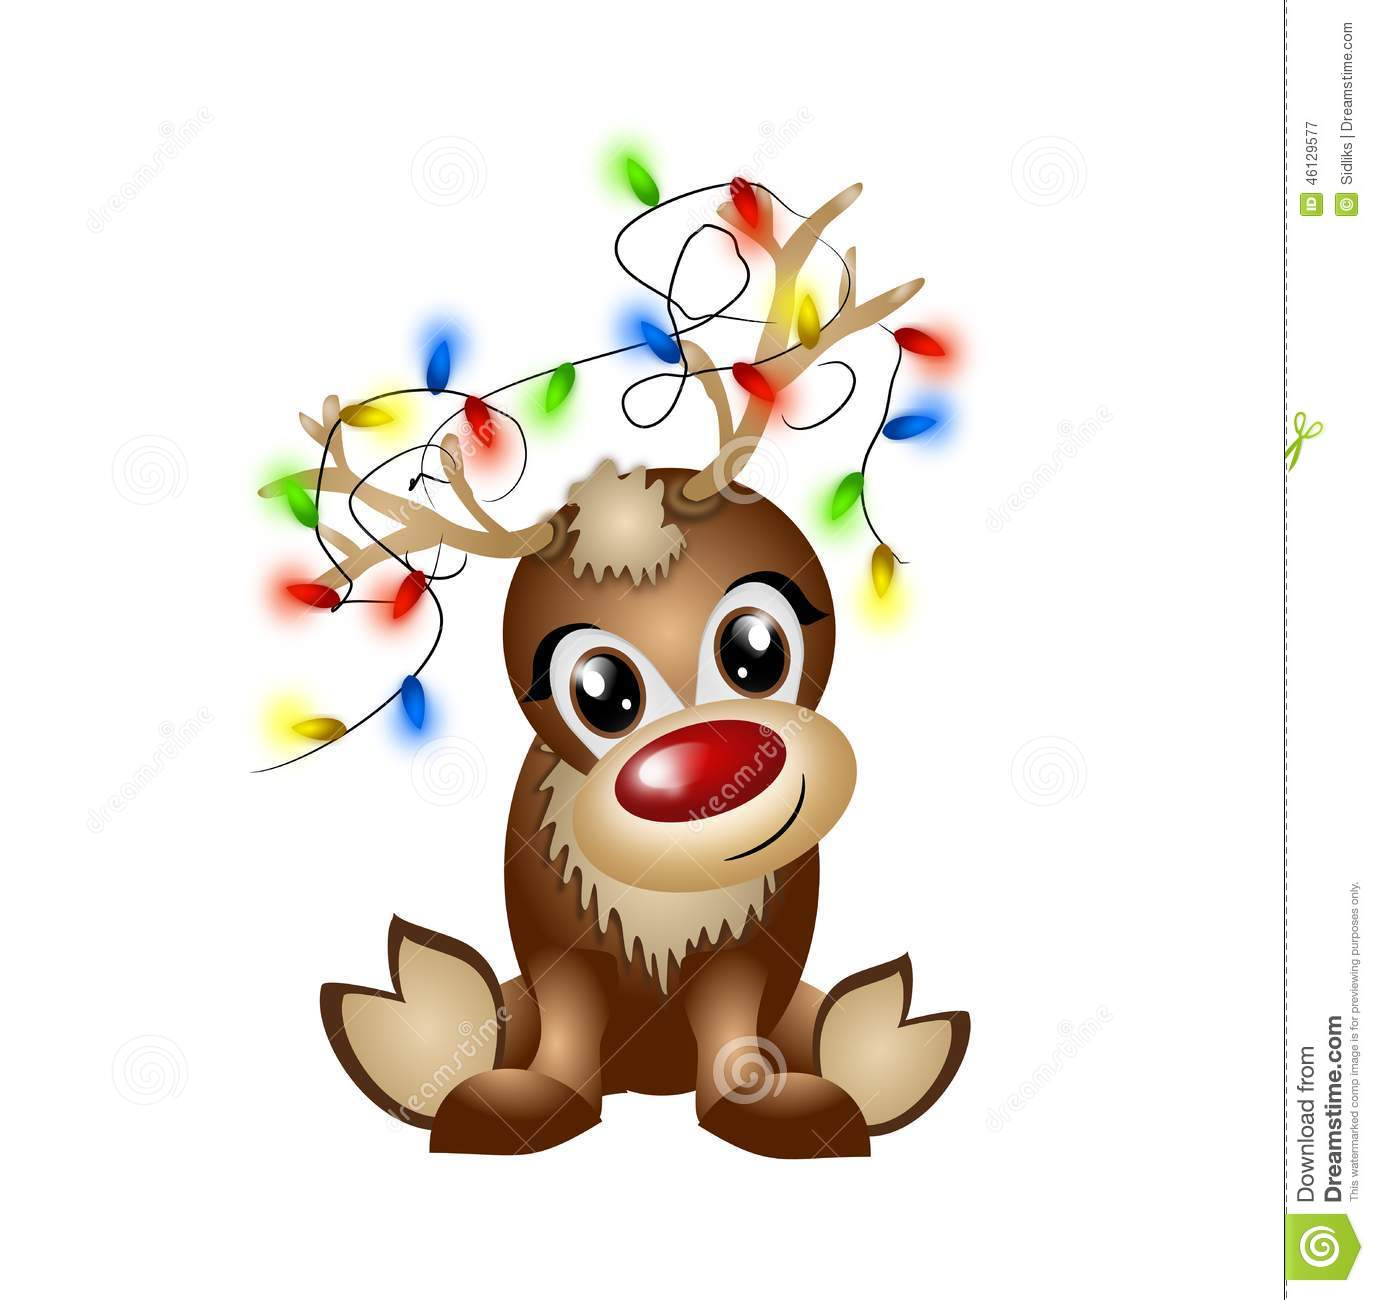 Reindeer with light chain stock illustration. Illustration of brown.